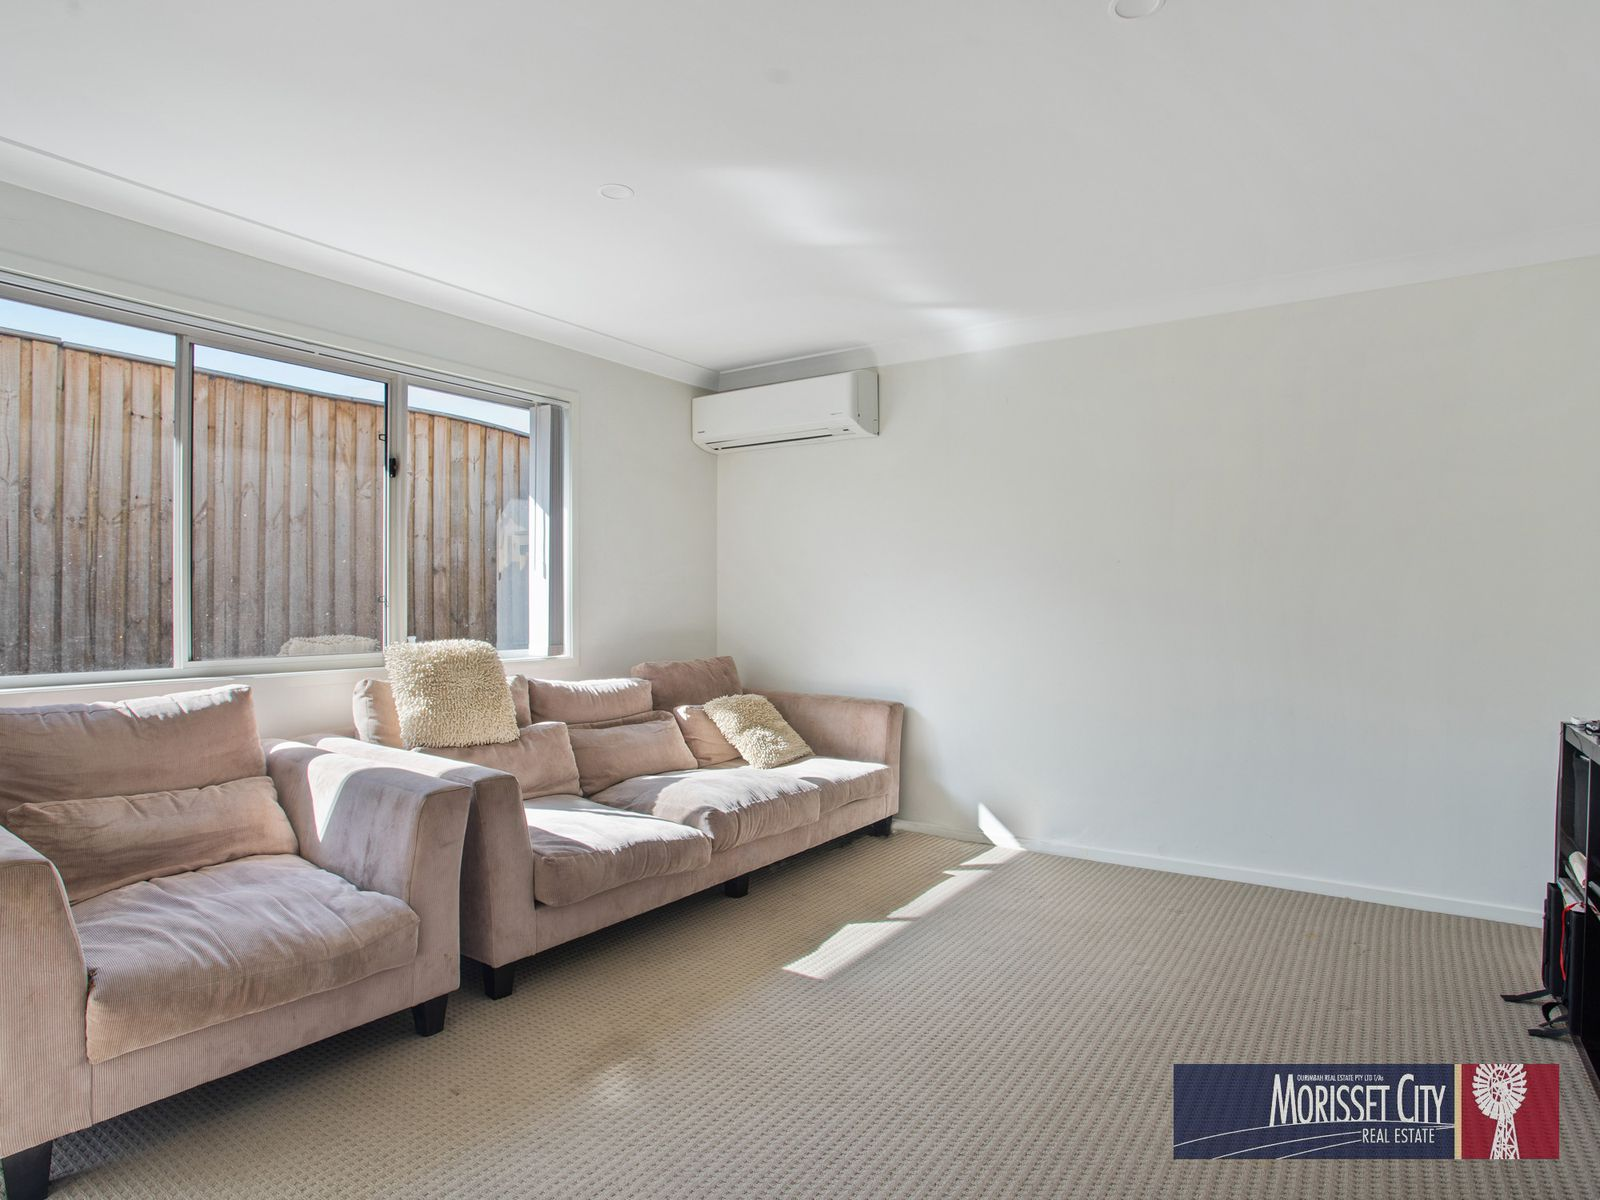 18 / 80 Goodwins Road, Morisset